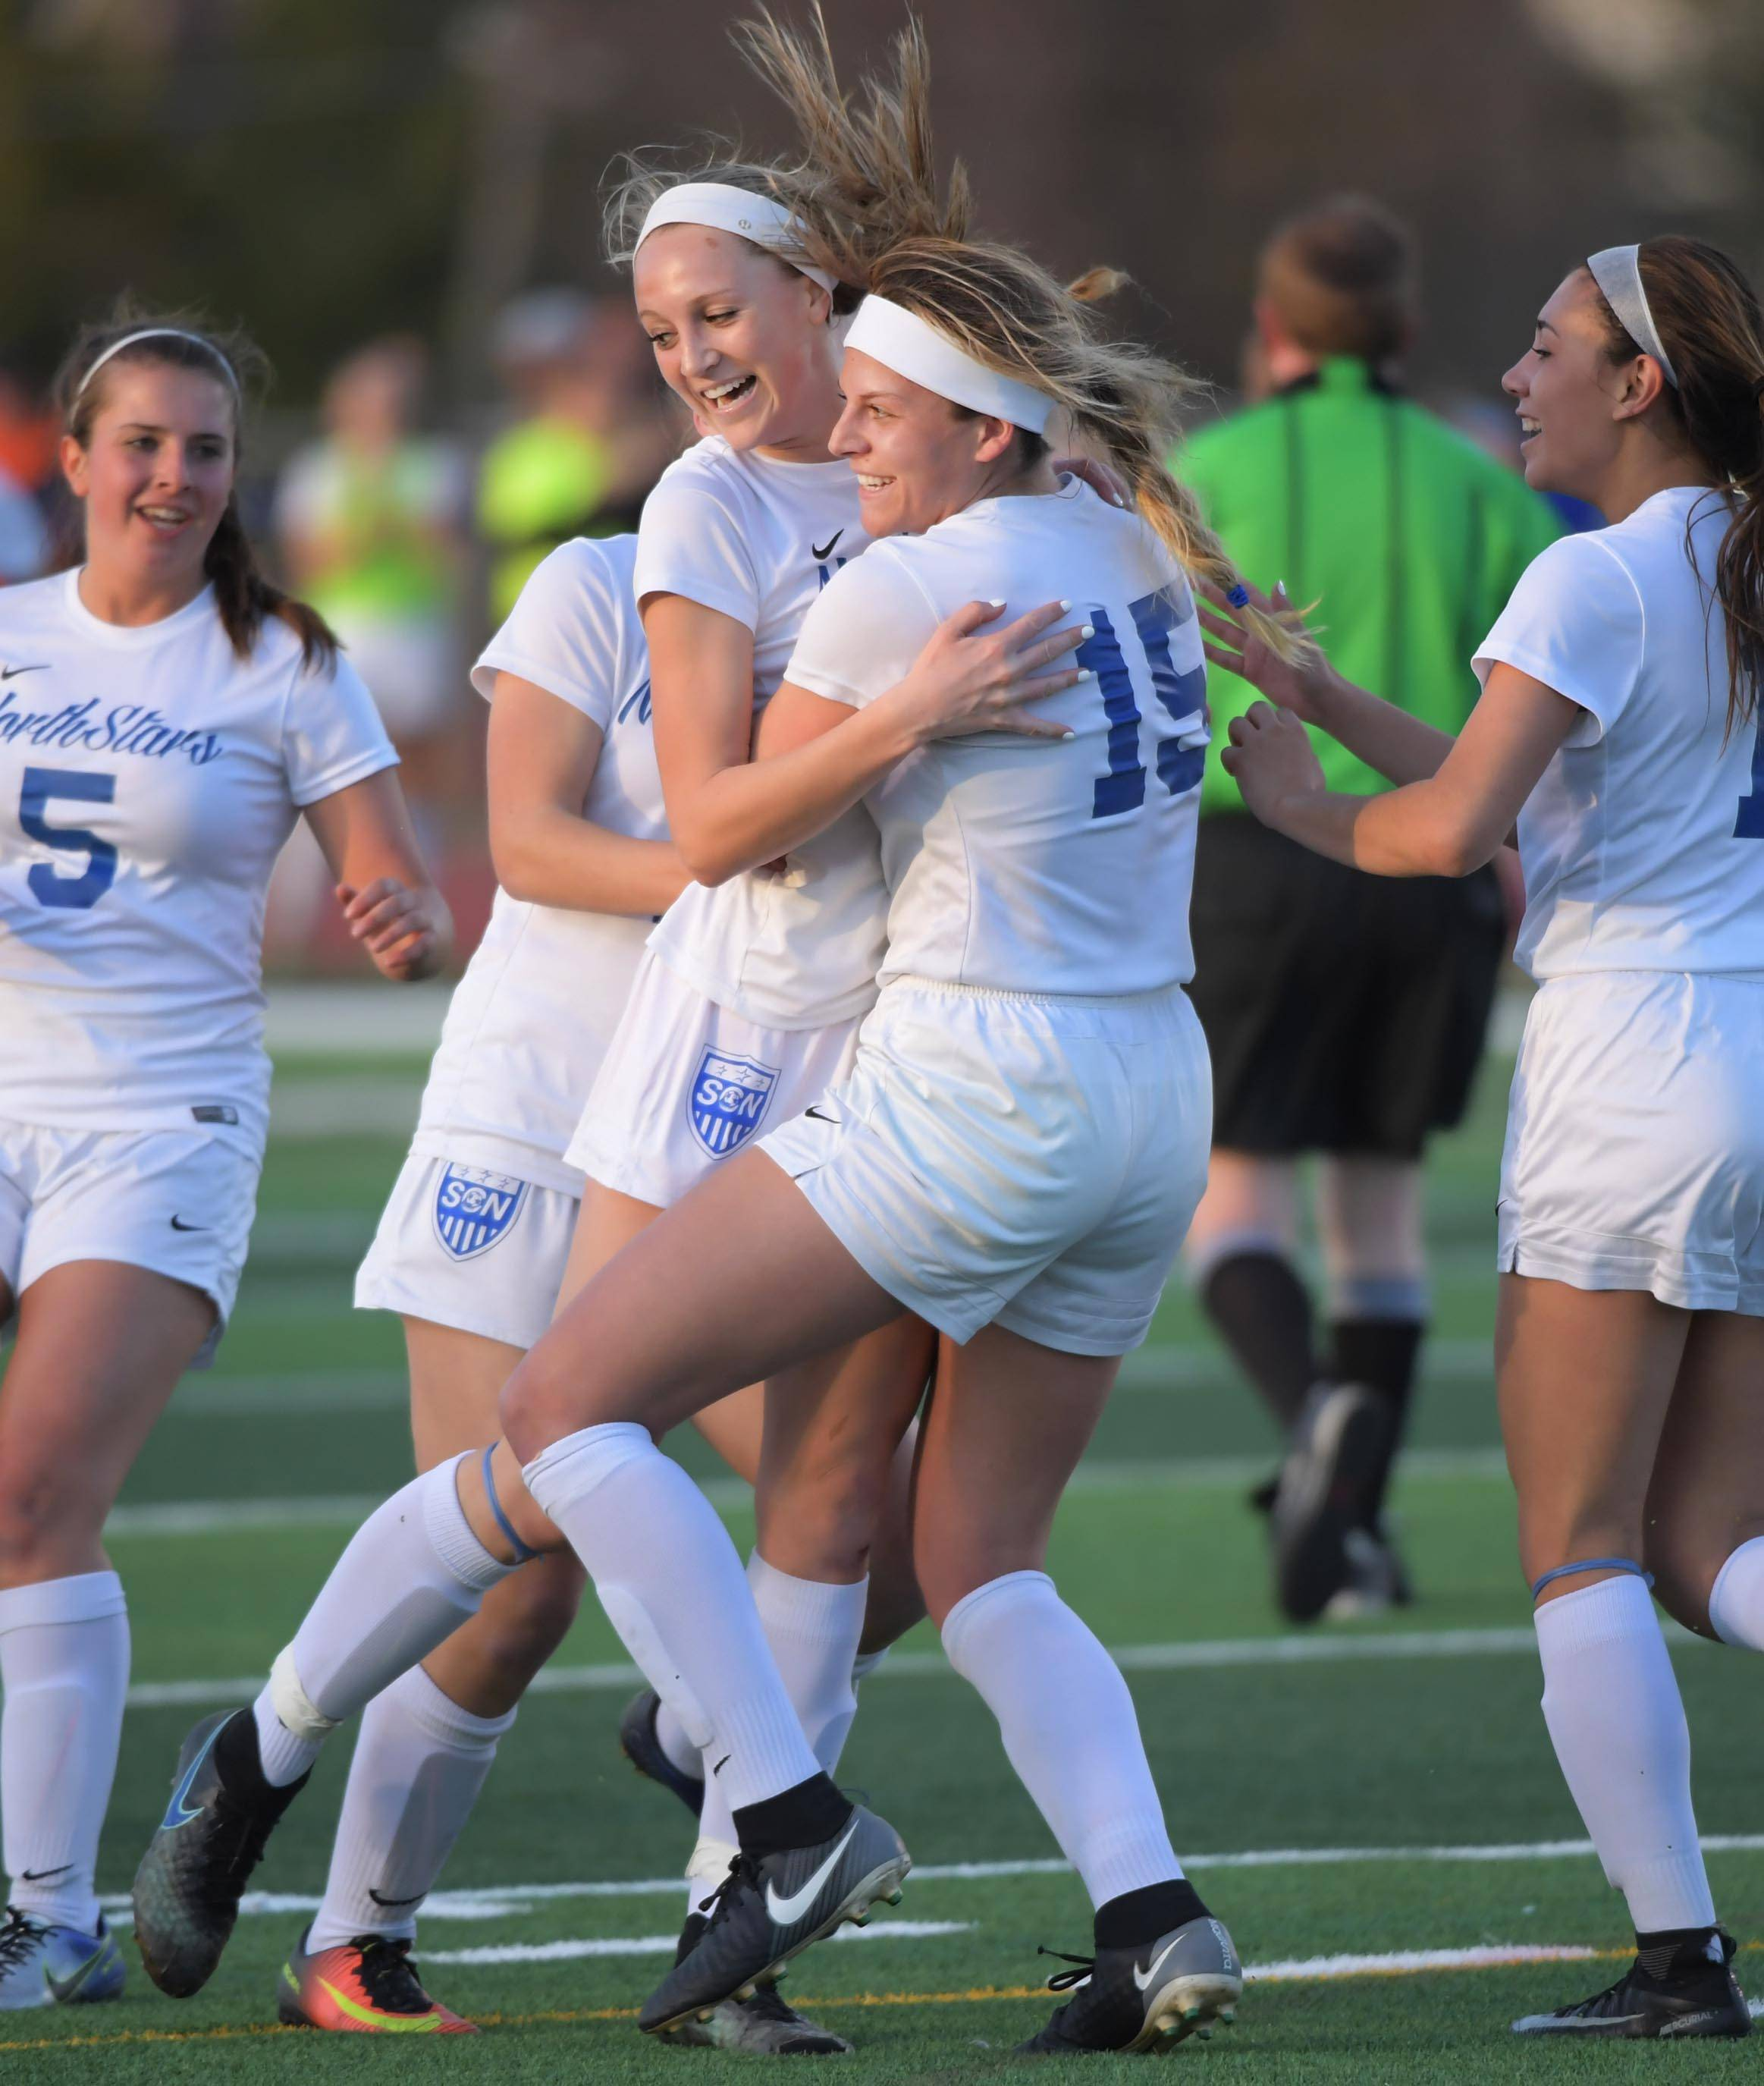 St. Charles North's Gia Wahlberg and teammate Hailey Rydberg, left, celebrate Wahlberg's first goal against St. Charles East in a girls soccer game at North High School Tuesday.